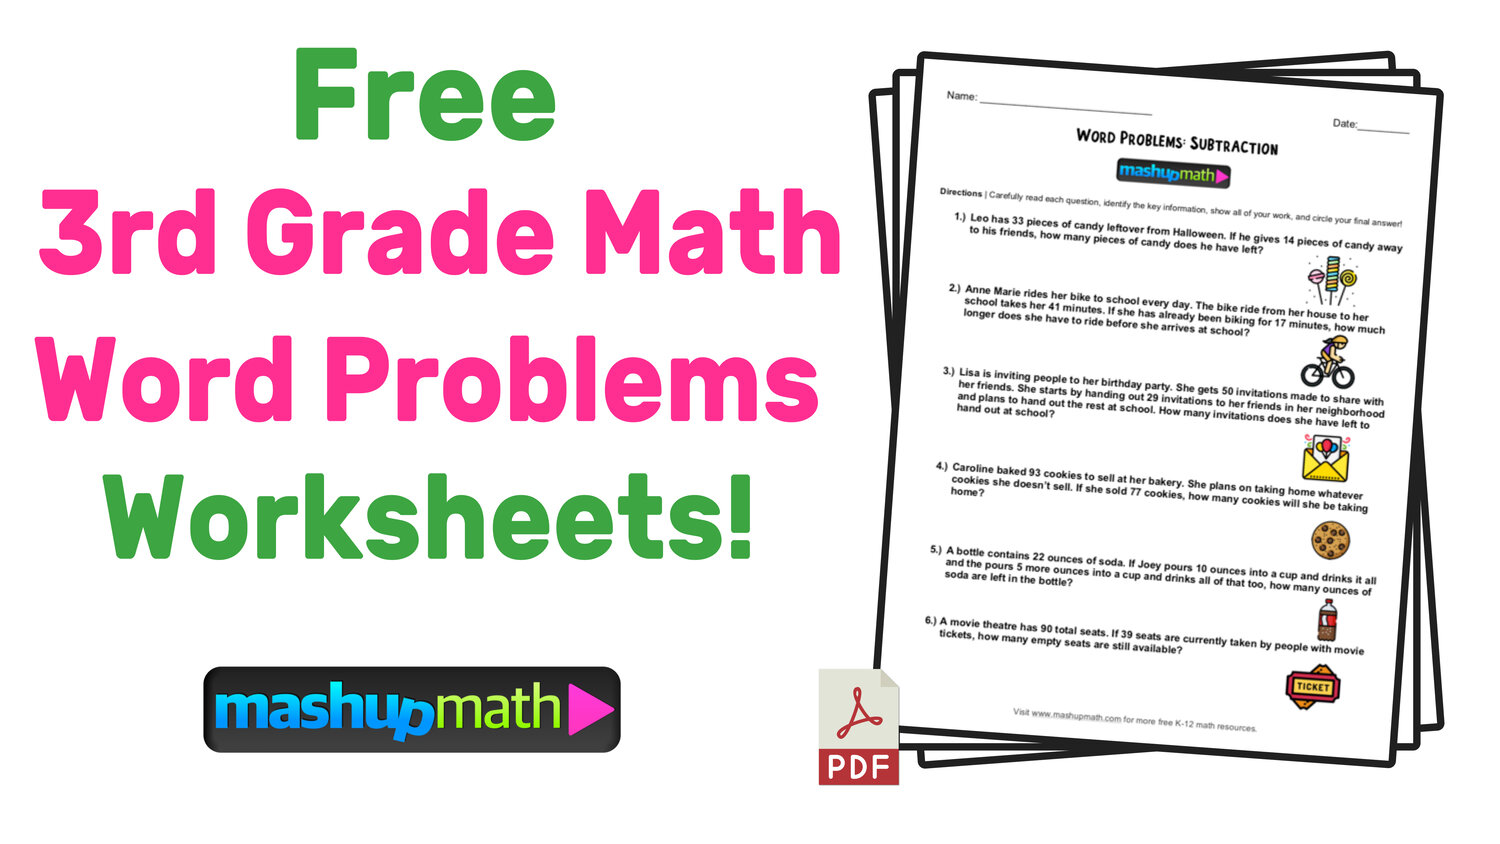 3rd Grade Math Word Problems Free Worksheets With Answers Mashup Math